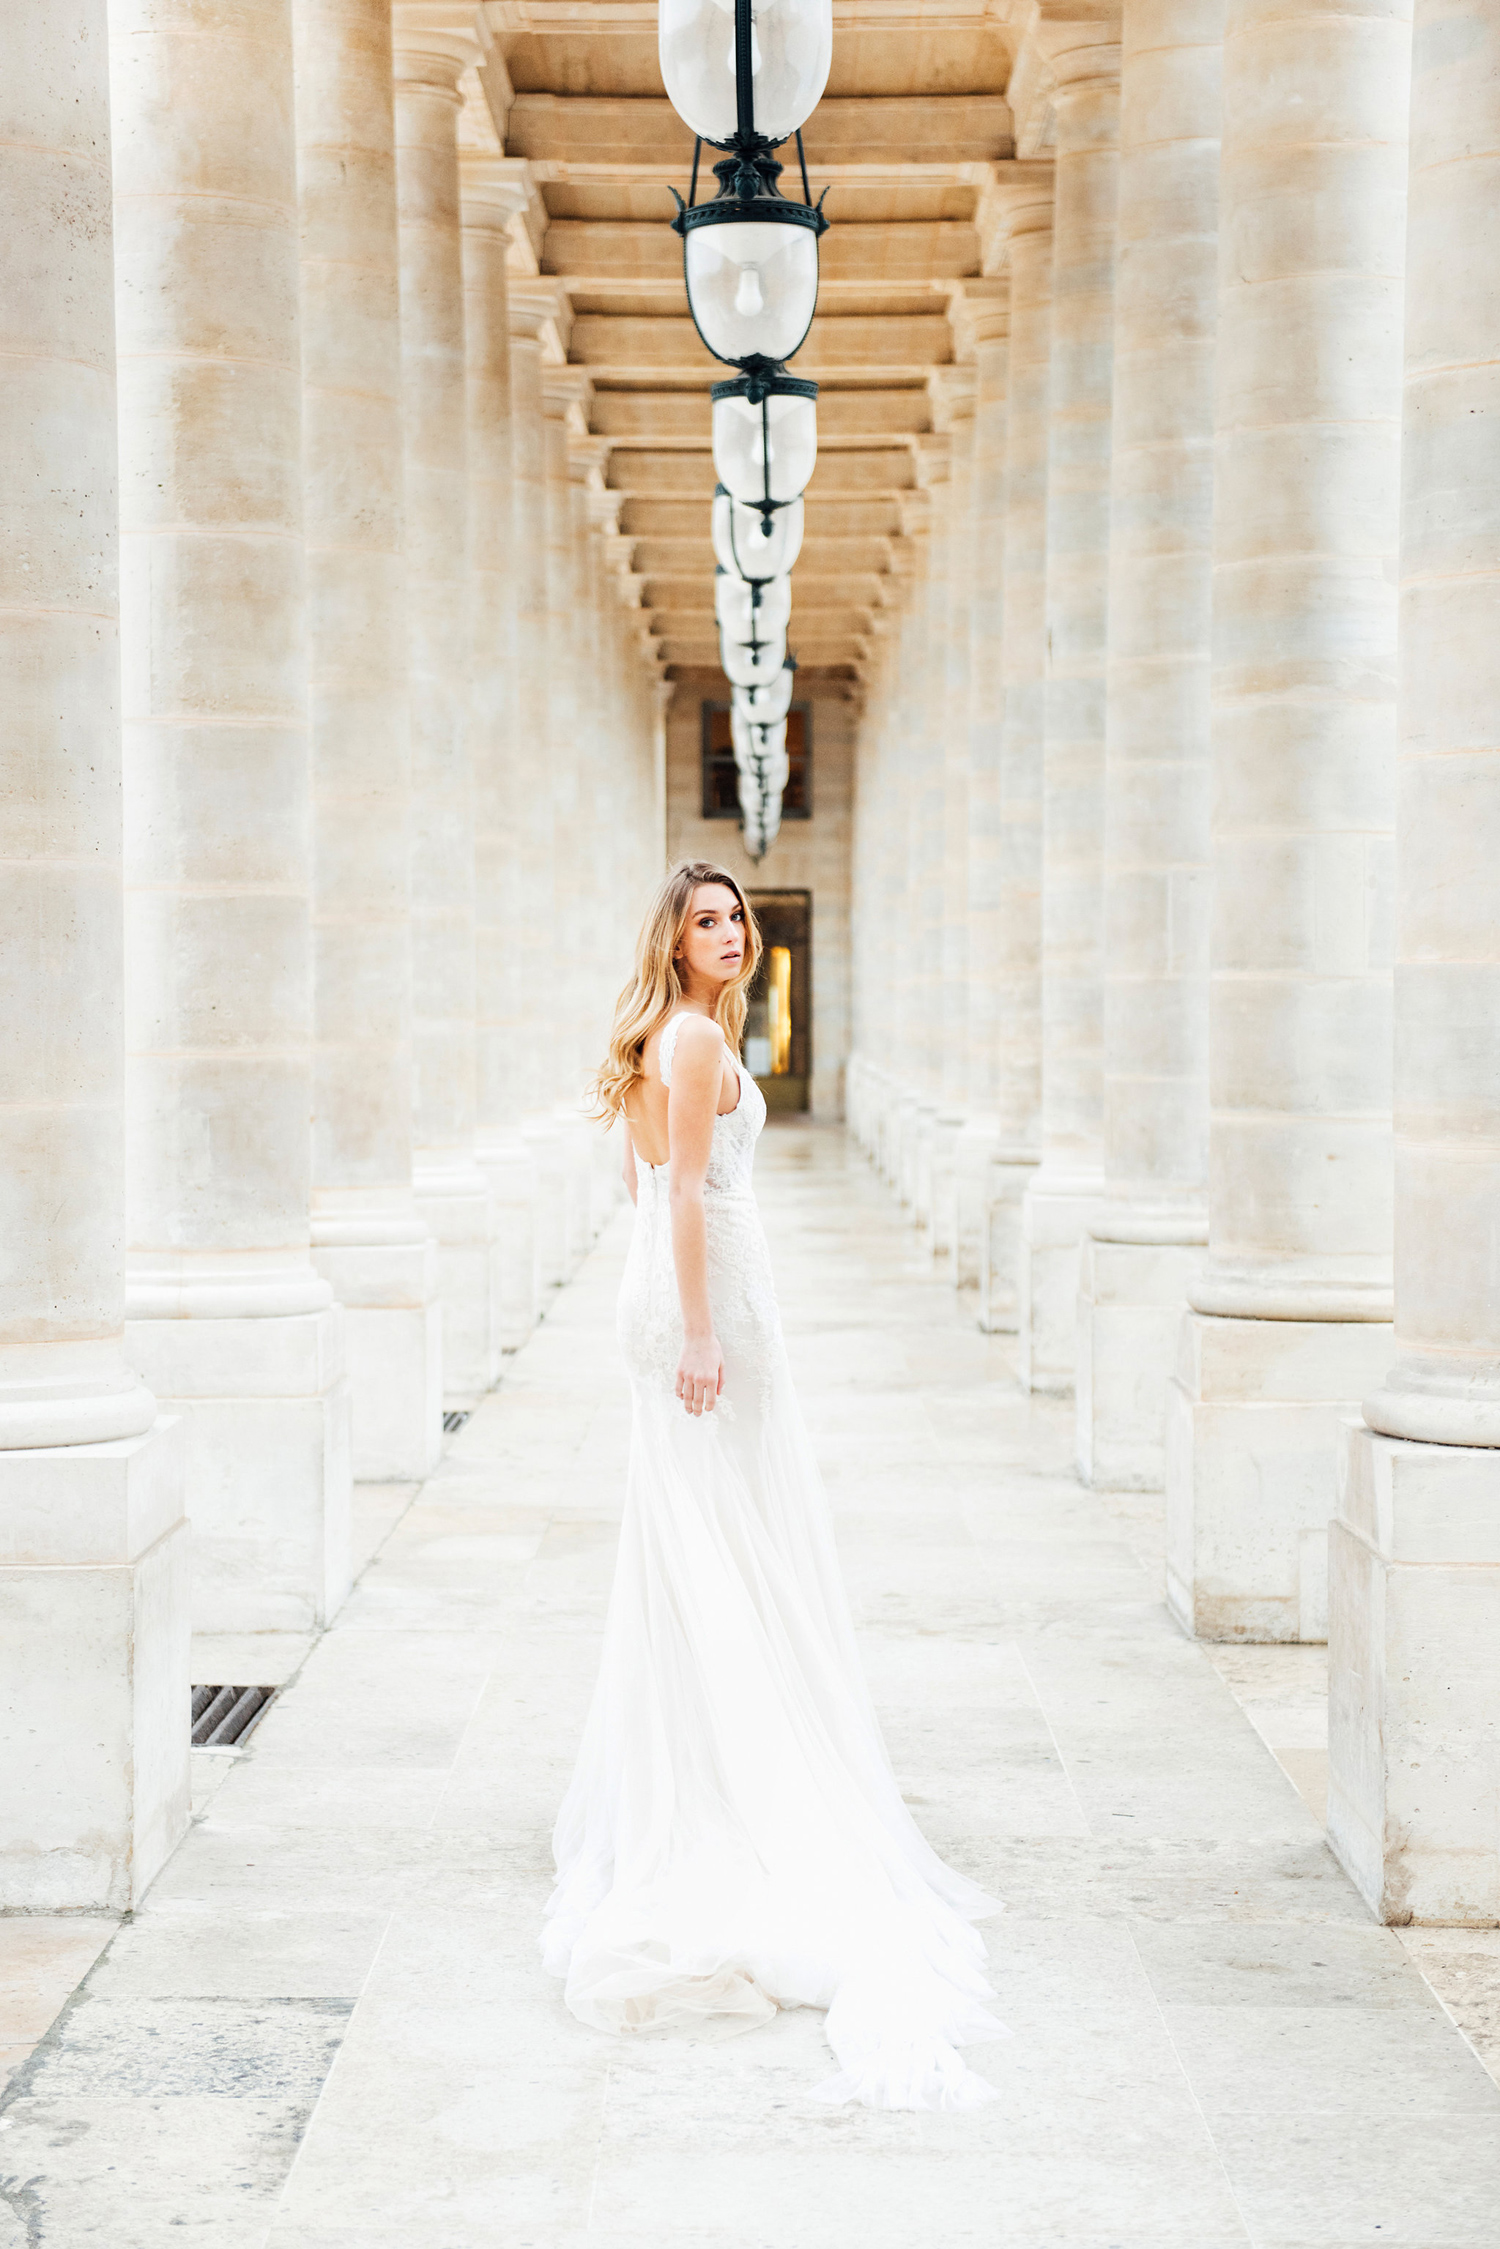 katie mitchell monique lhuillier bridal paris france wedding photographer_23.jpg